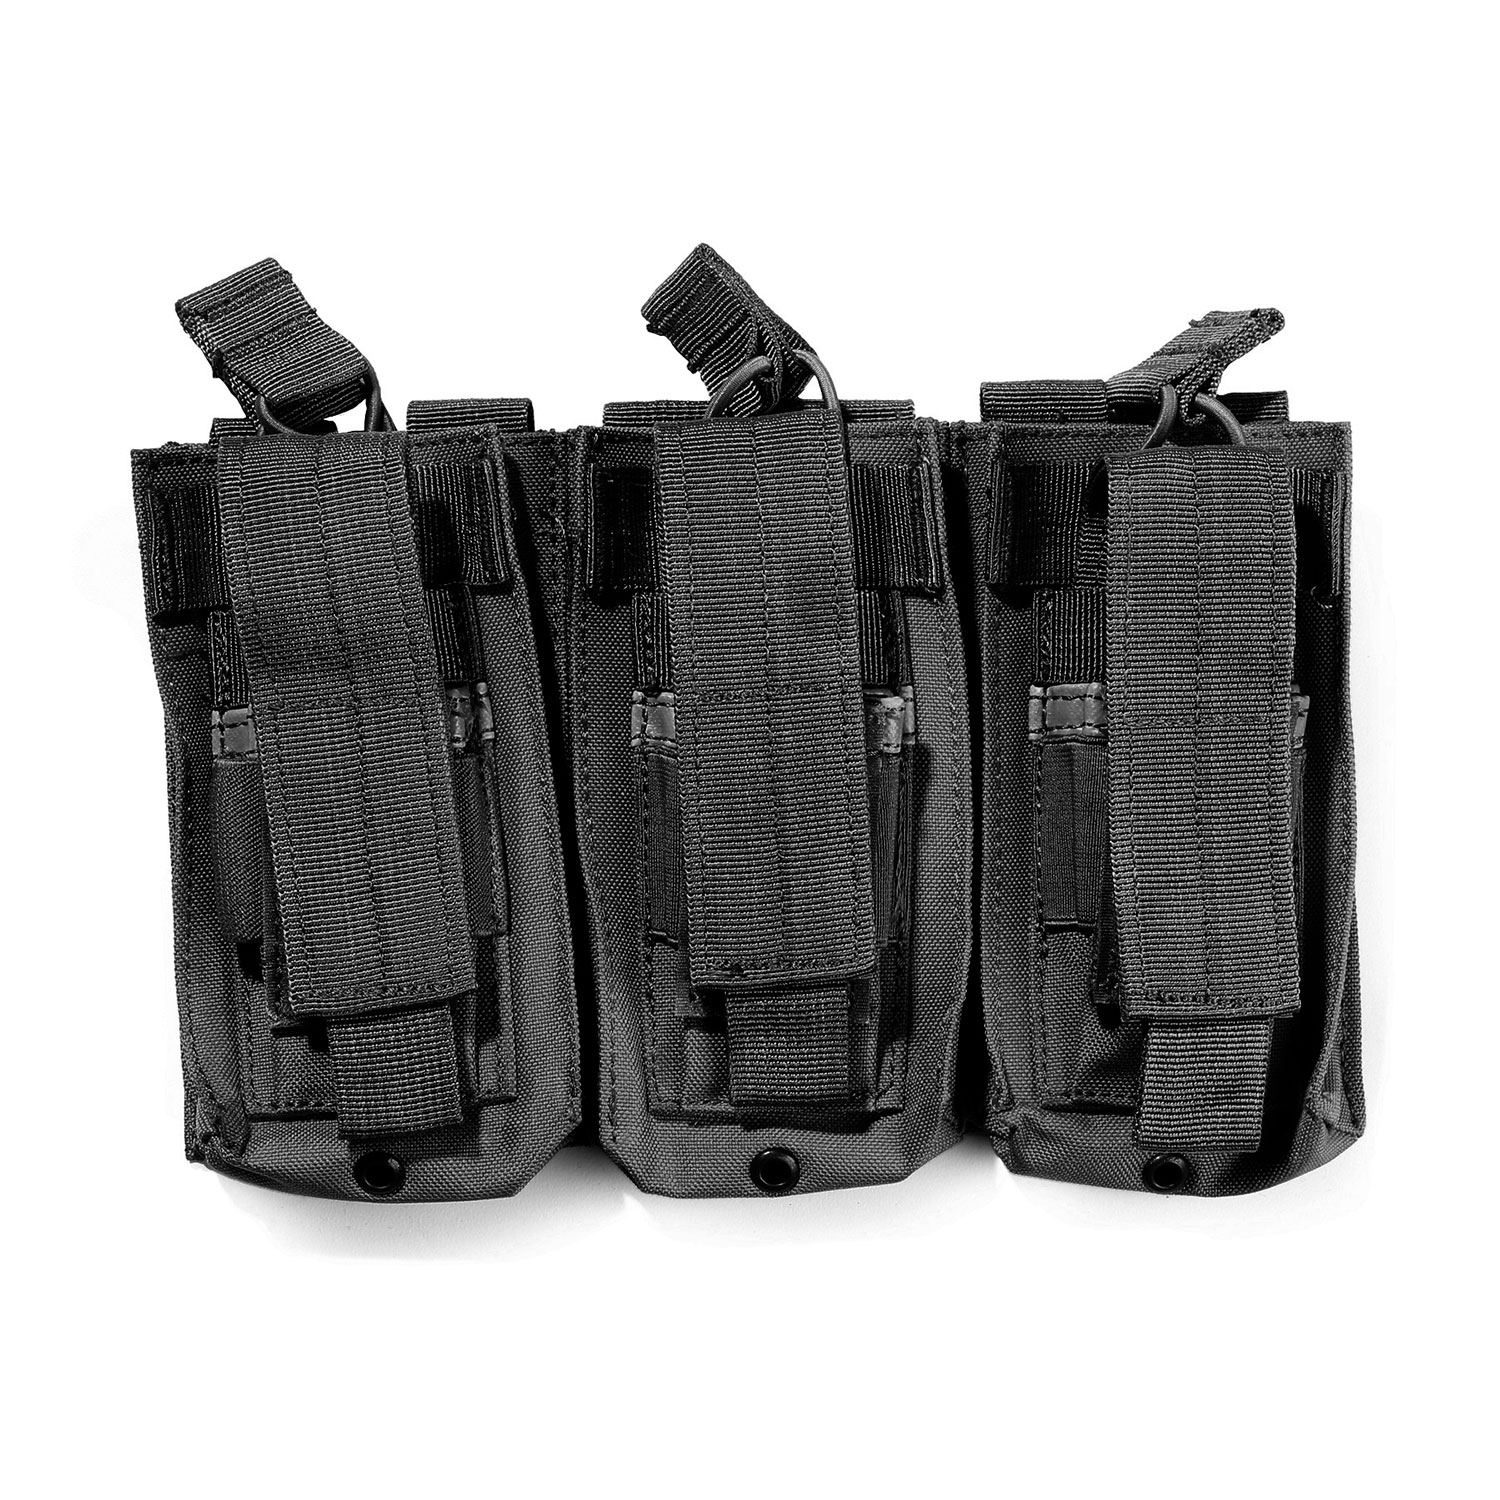 5ive Star Gear Triple Open Top M4/M16 Mag Pouch